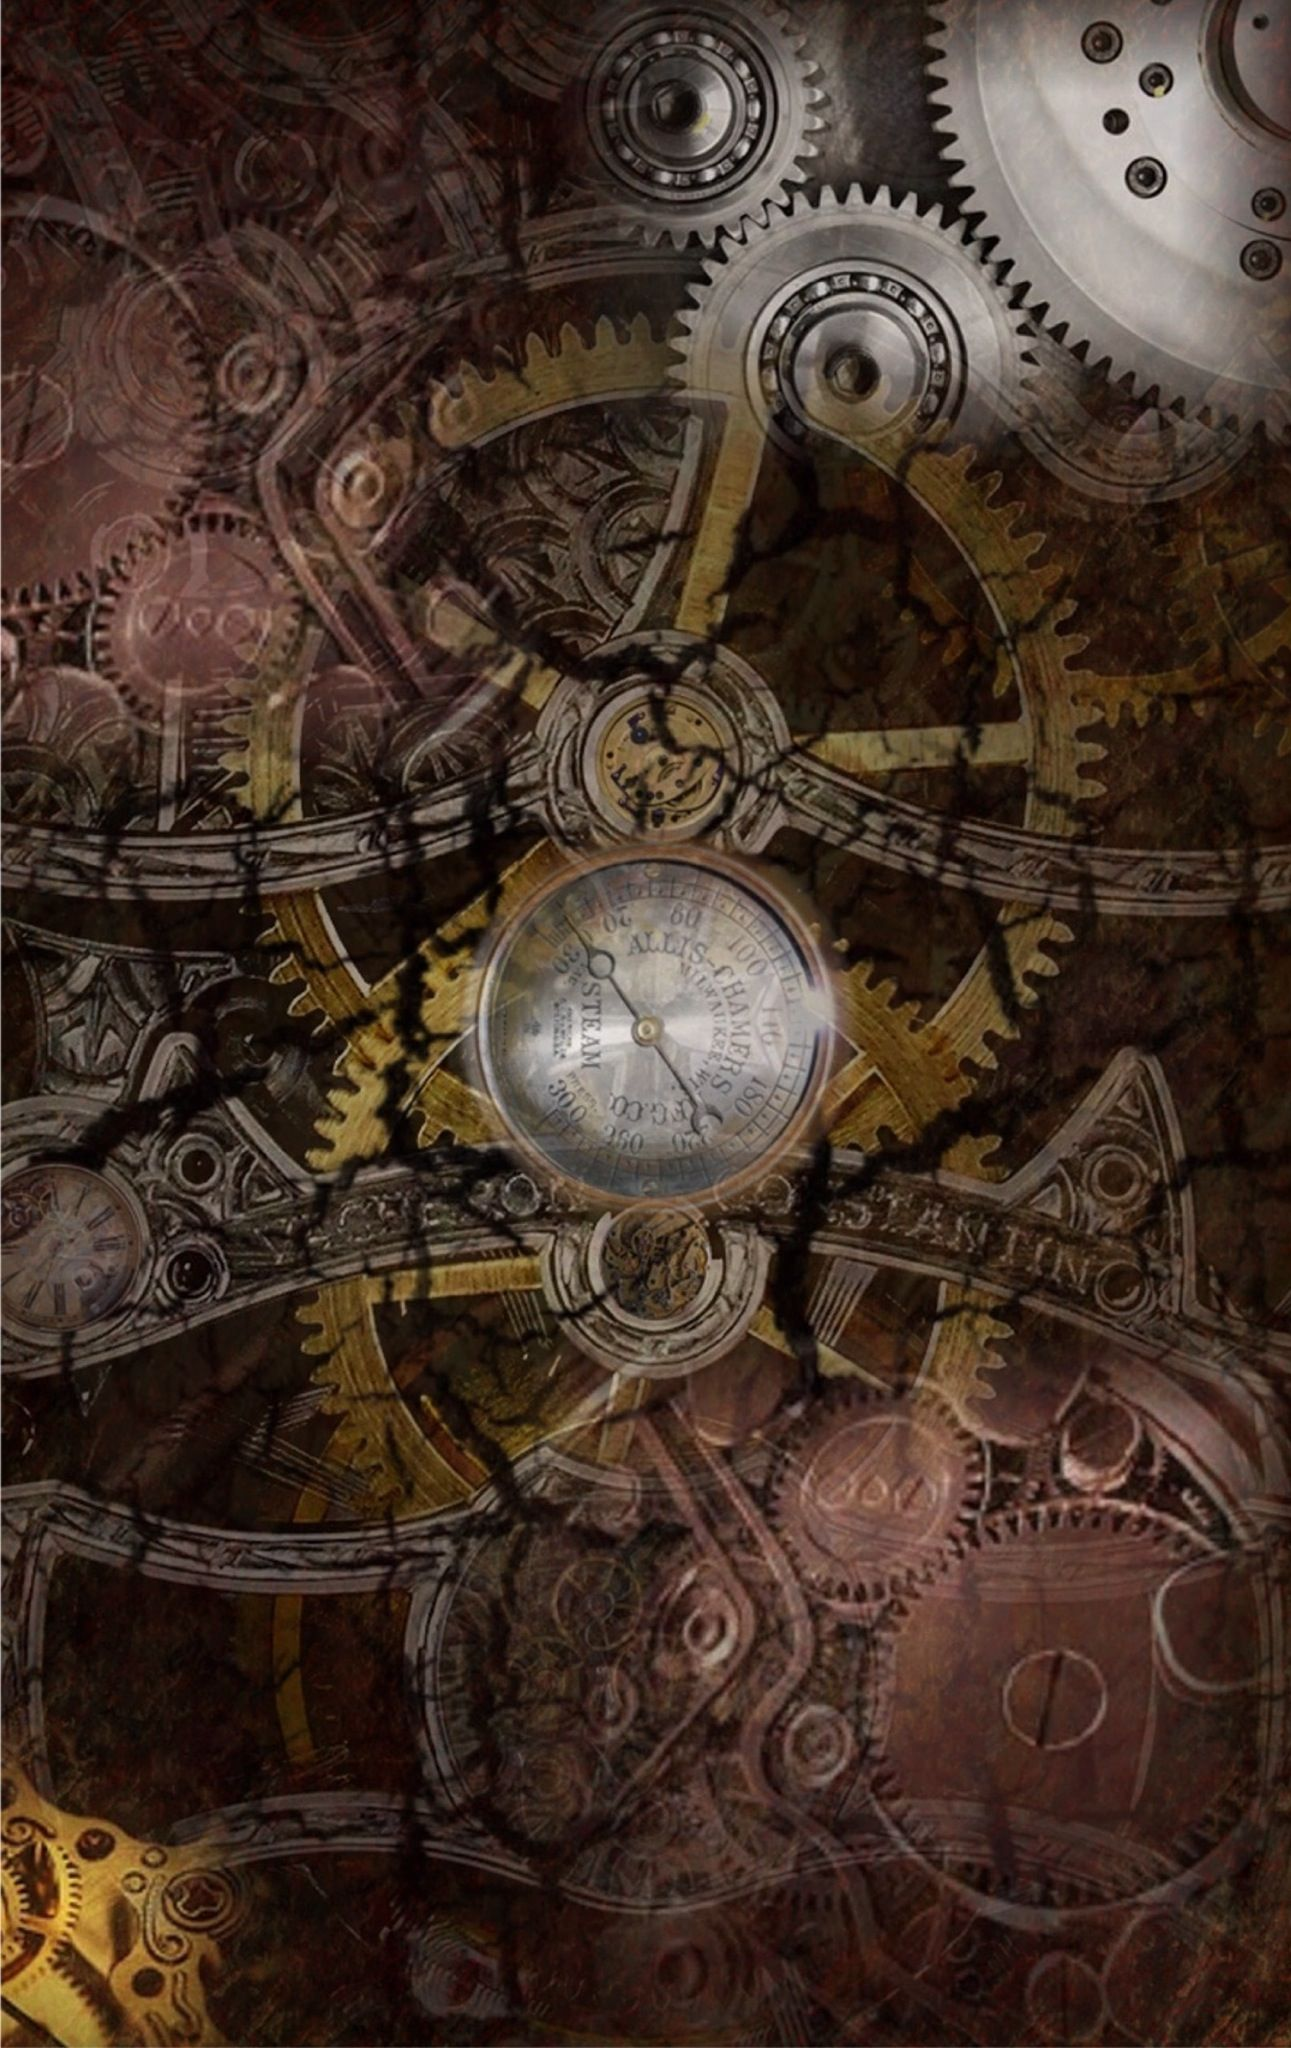 Exceptional Steampunk IPhone Wallpaper